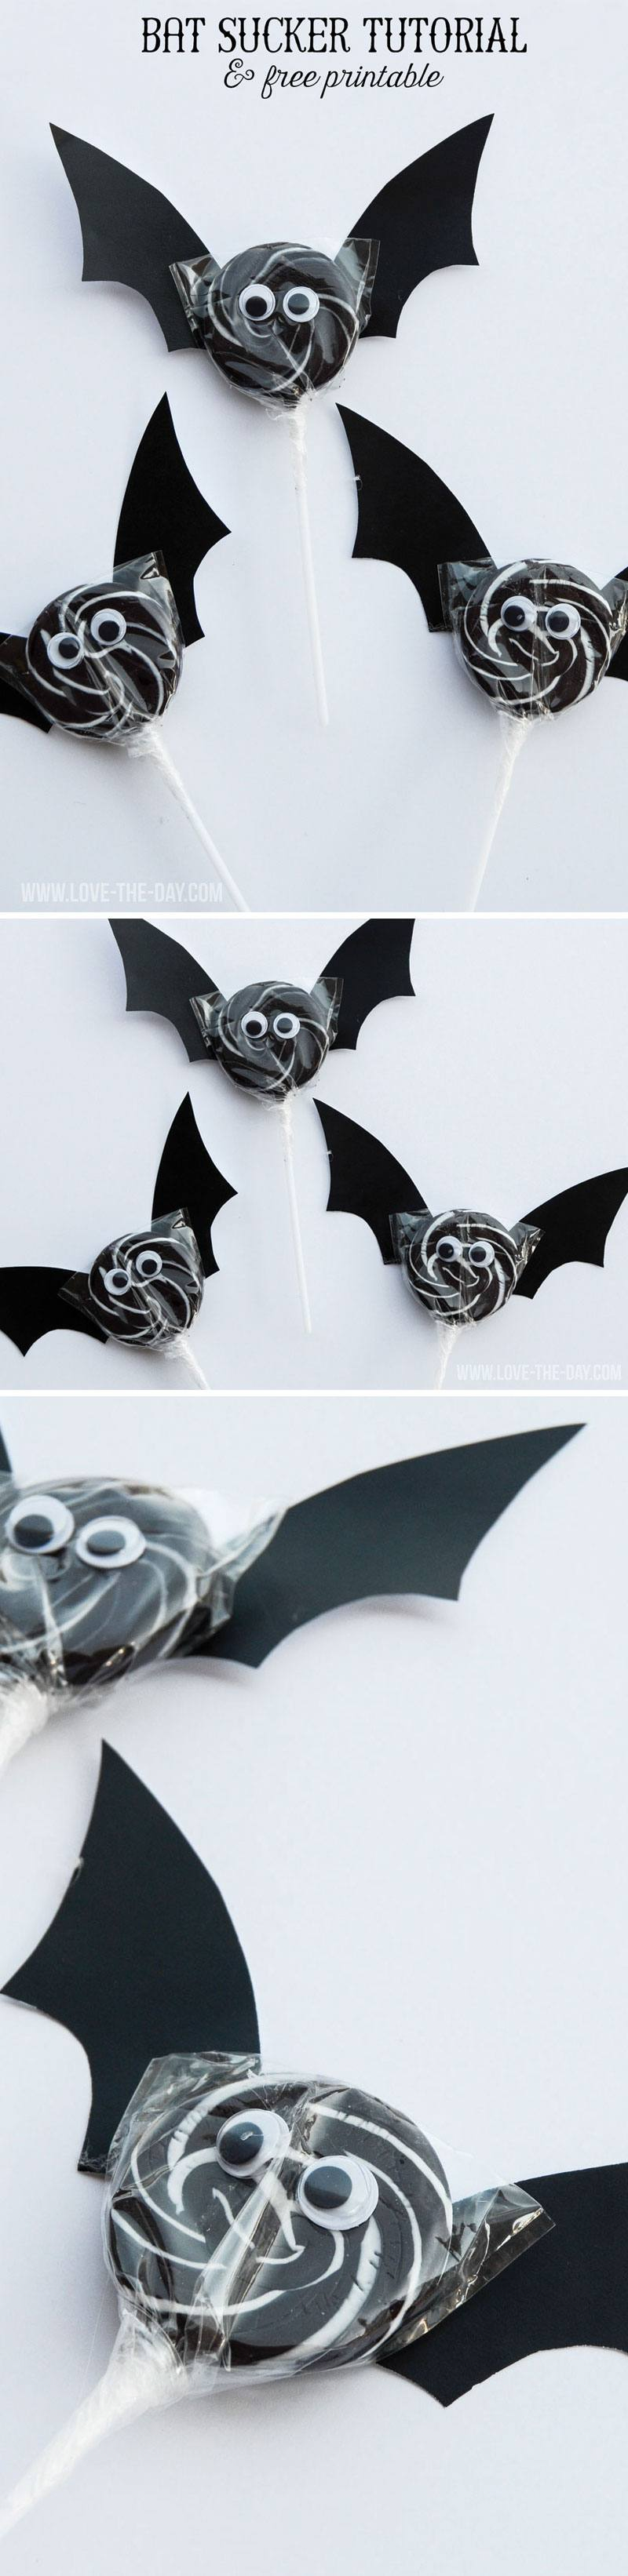 BAT SUCKER TUTORIAL & FREE BAT TEMPLATE by Lindi Haws of Love The Day